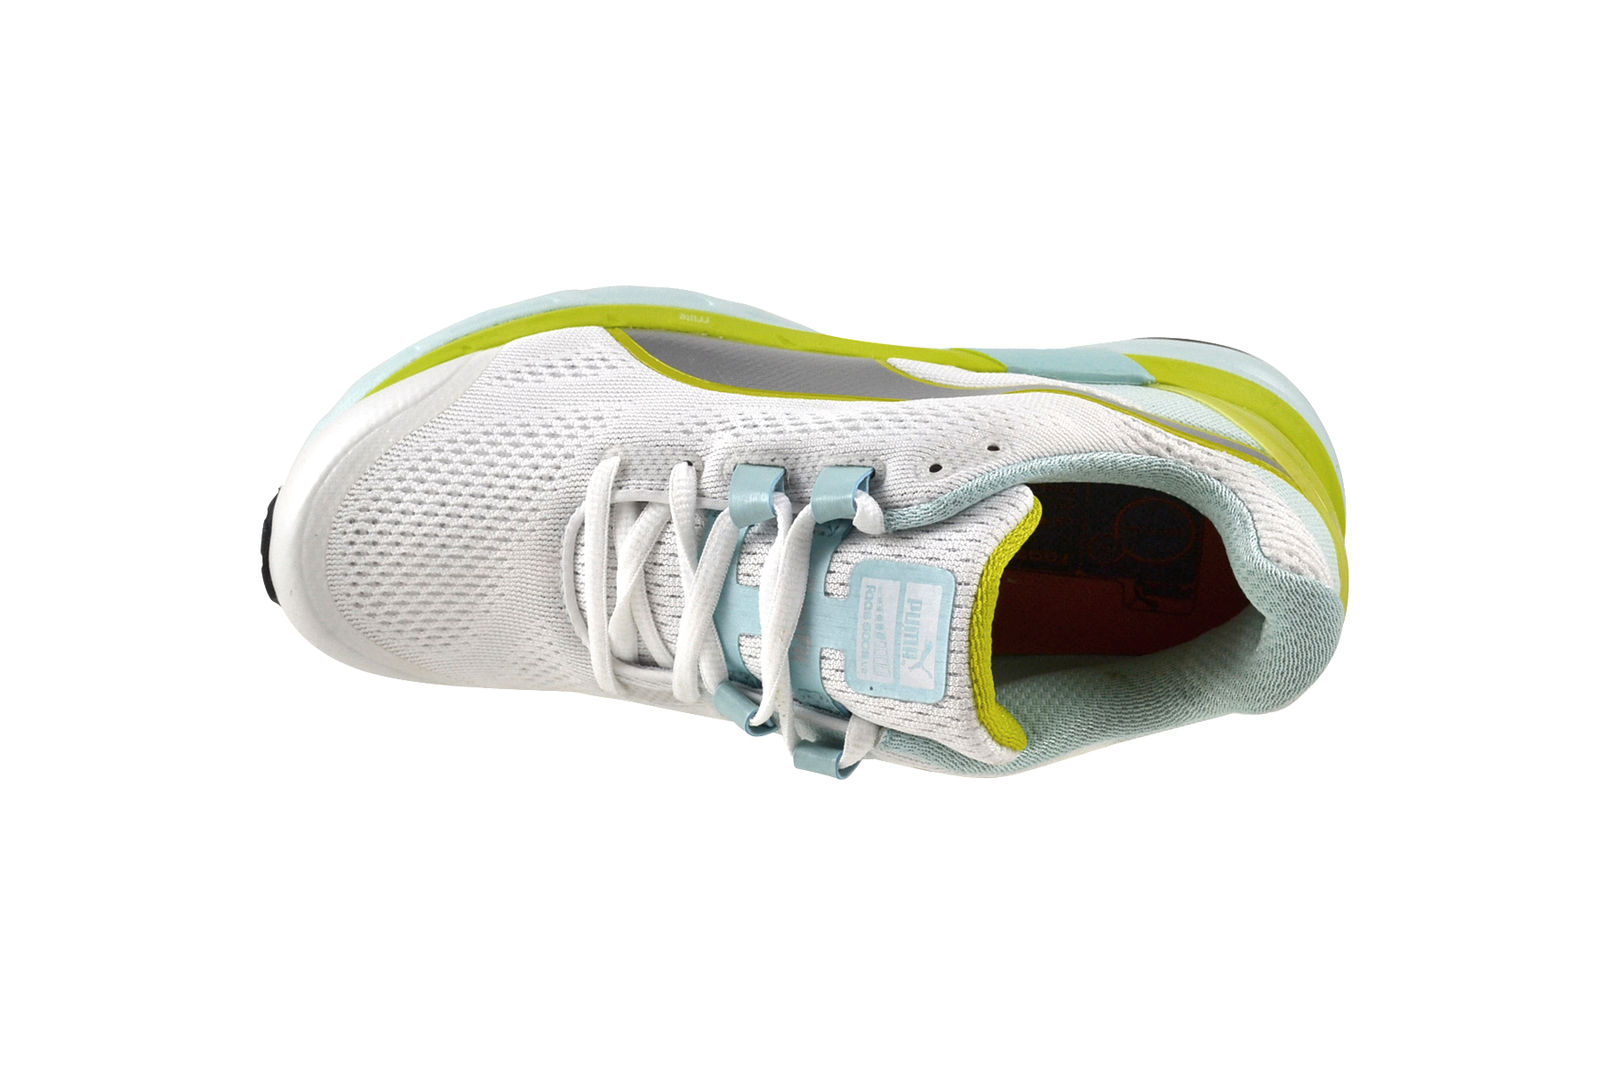 Puma Faas 600 S S S v2 soit + blanc Clearwater jaune argent Chaussures Baskets 188125 01 179b4a